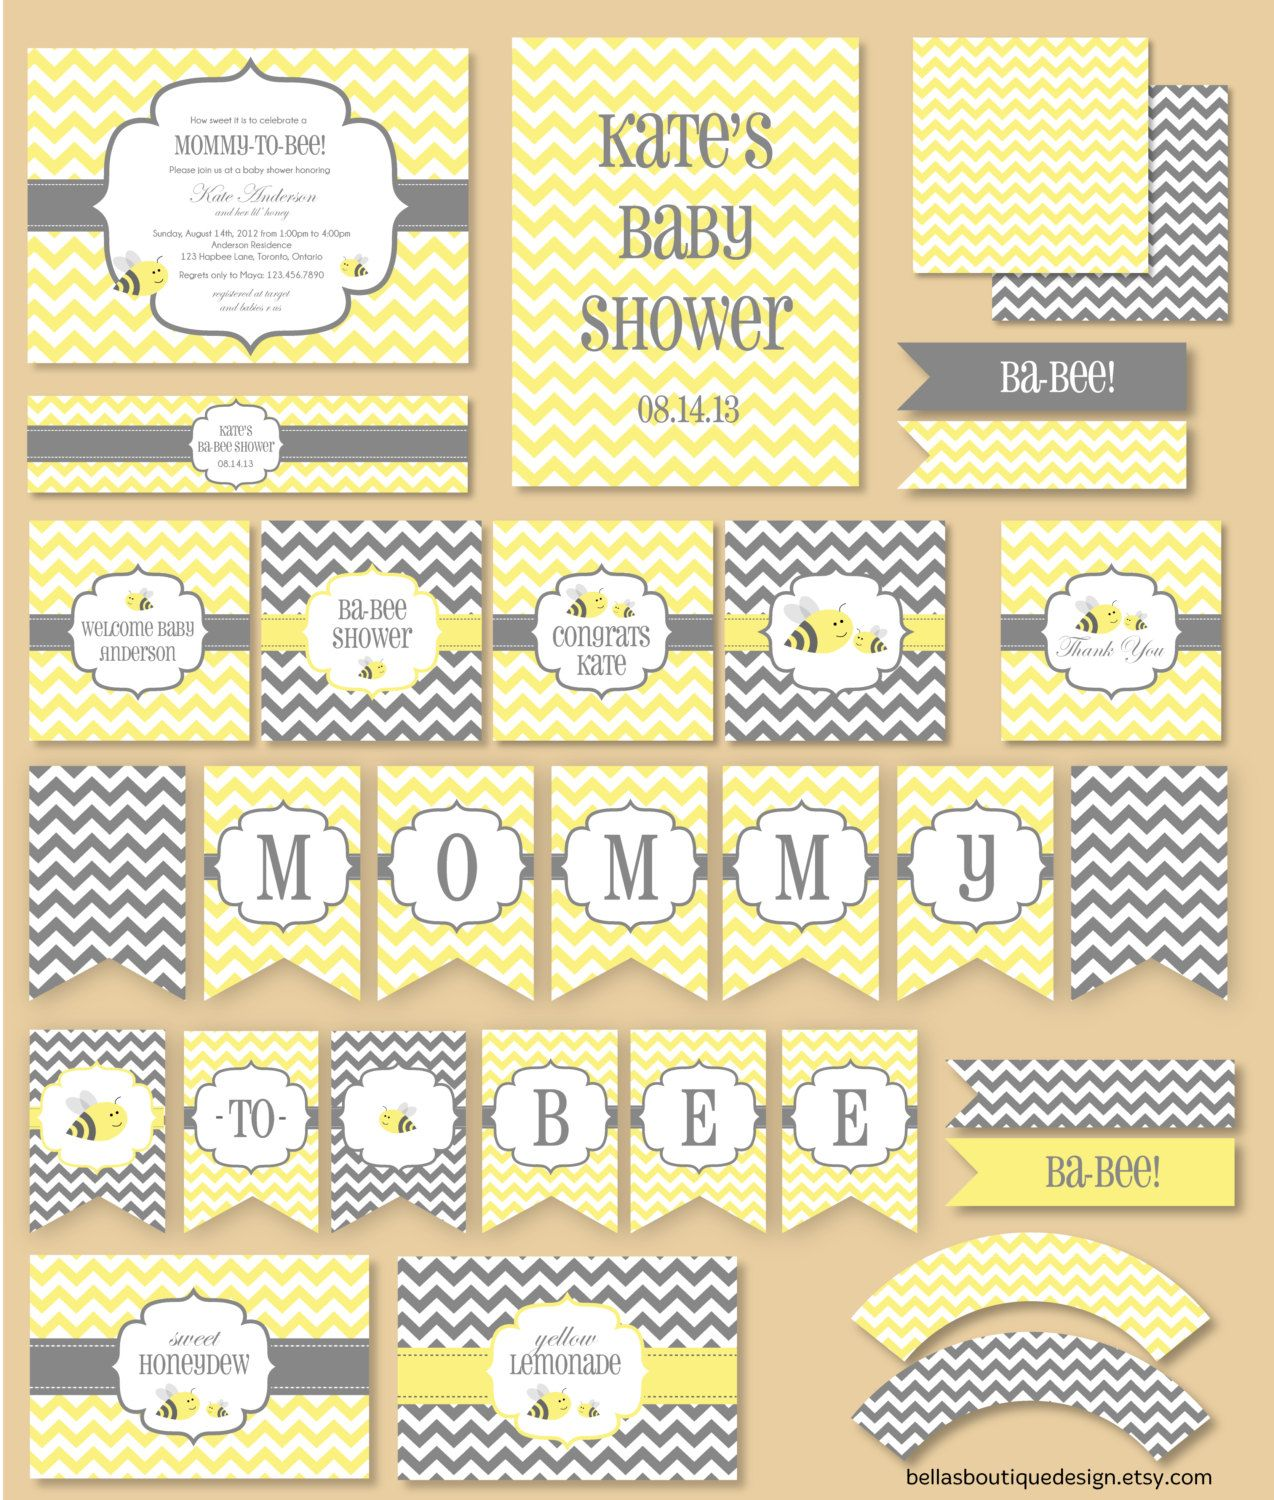 Mommy To Bee Baby Shower Party Printables Paper